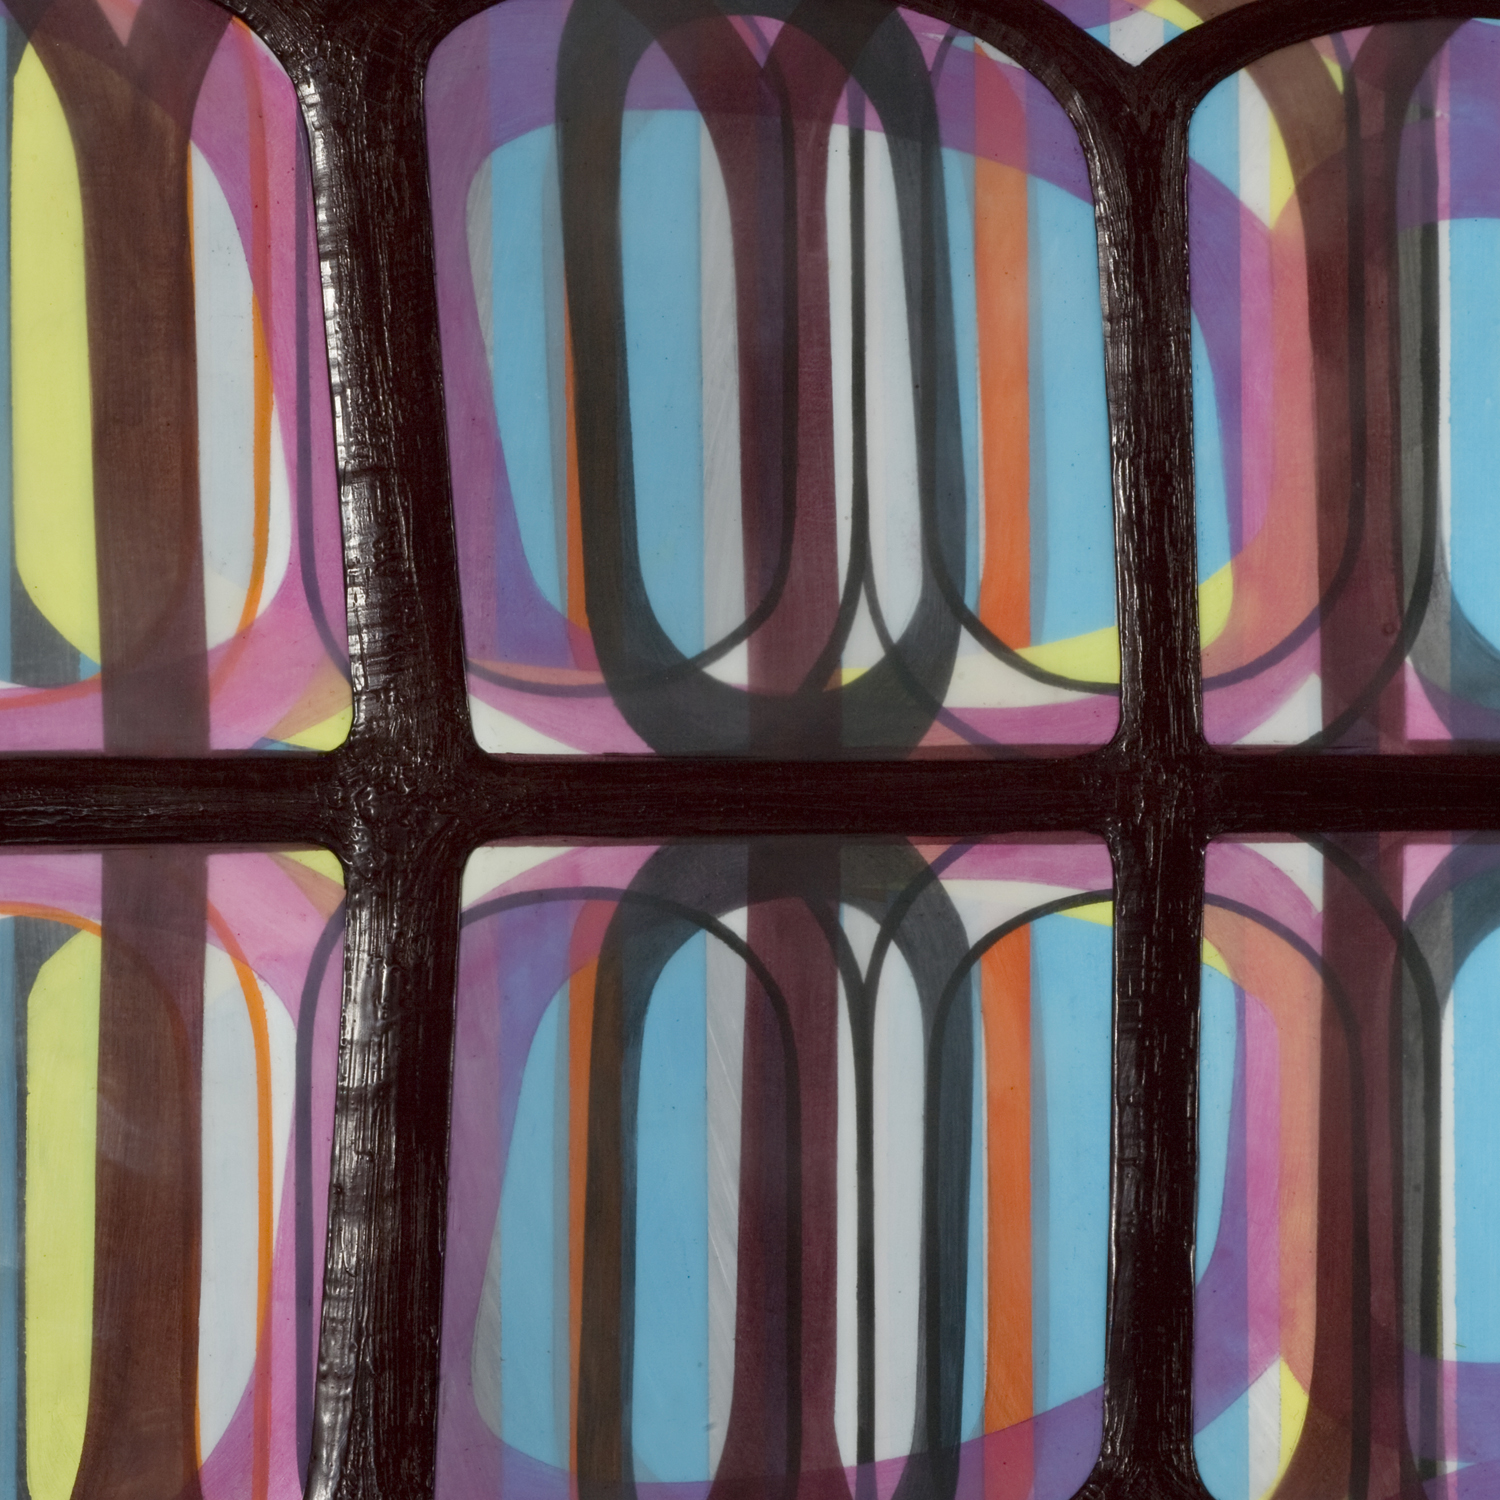 """[detail]  Identical/Variation (pink, blue, green, black) #3, 2007 Oil and encaustic on panel 36"""" x 36"""" x 2"""""""